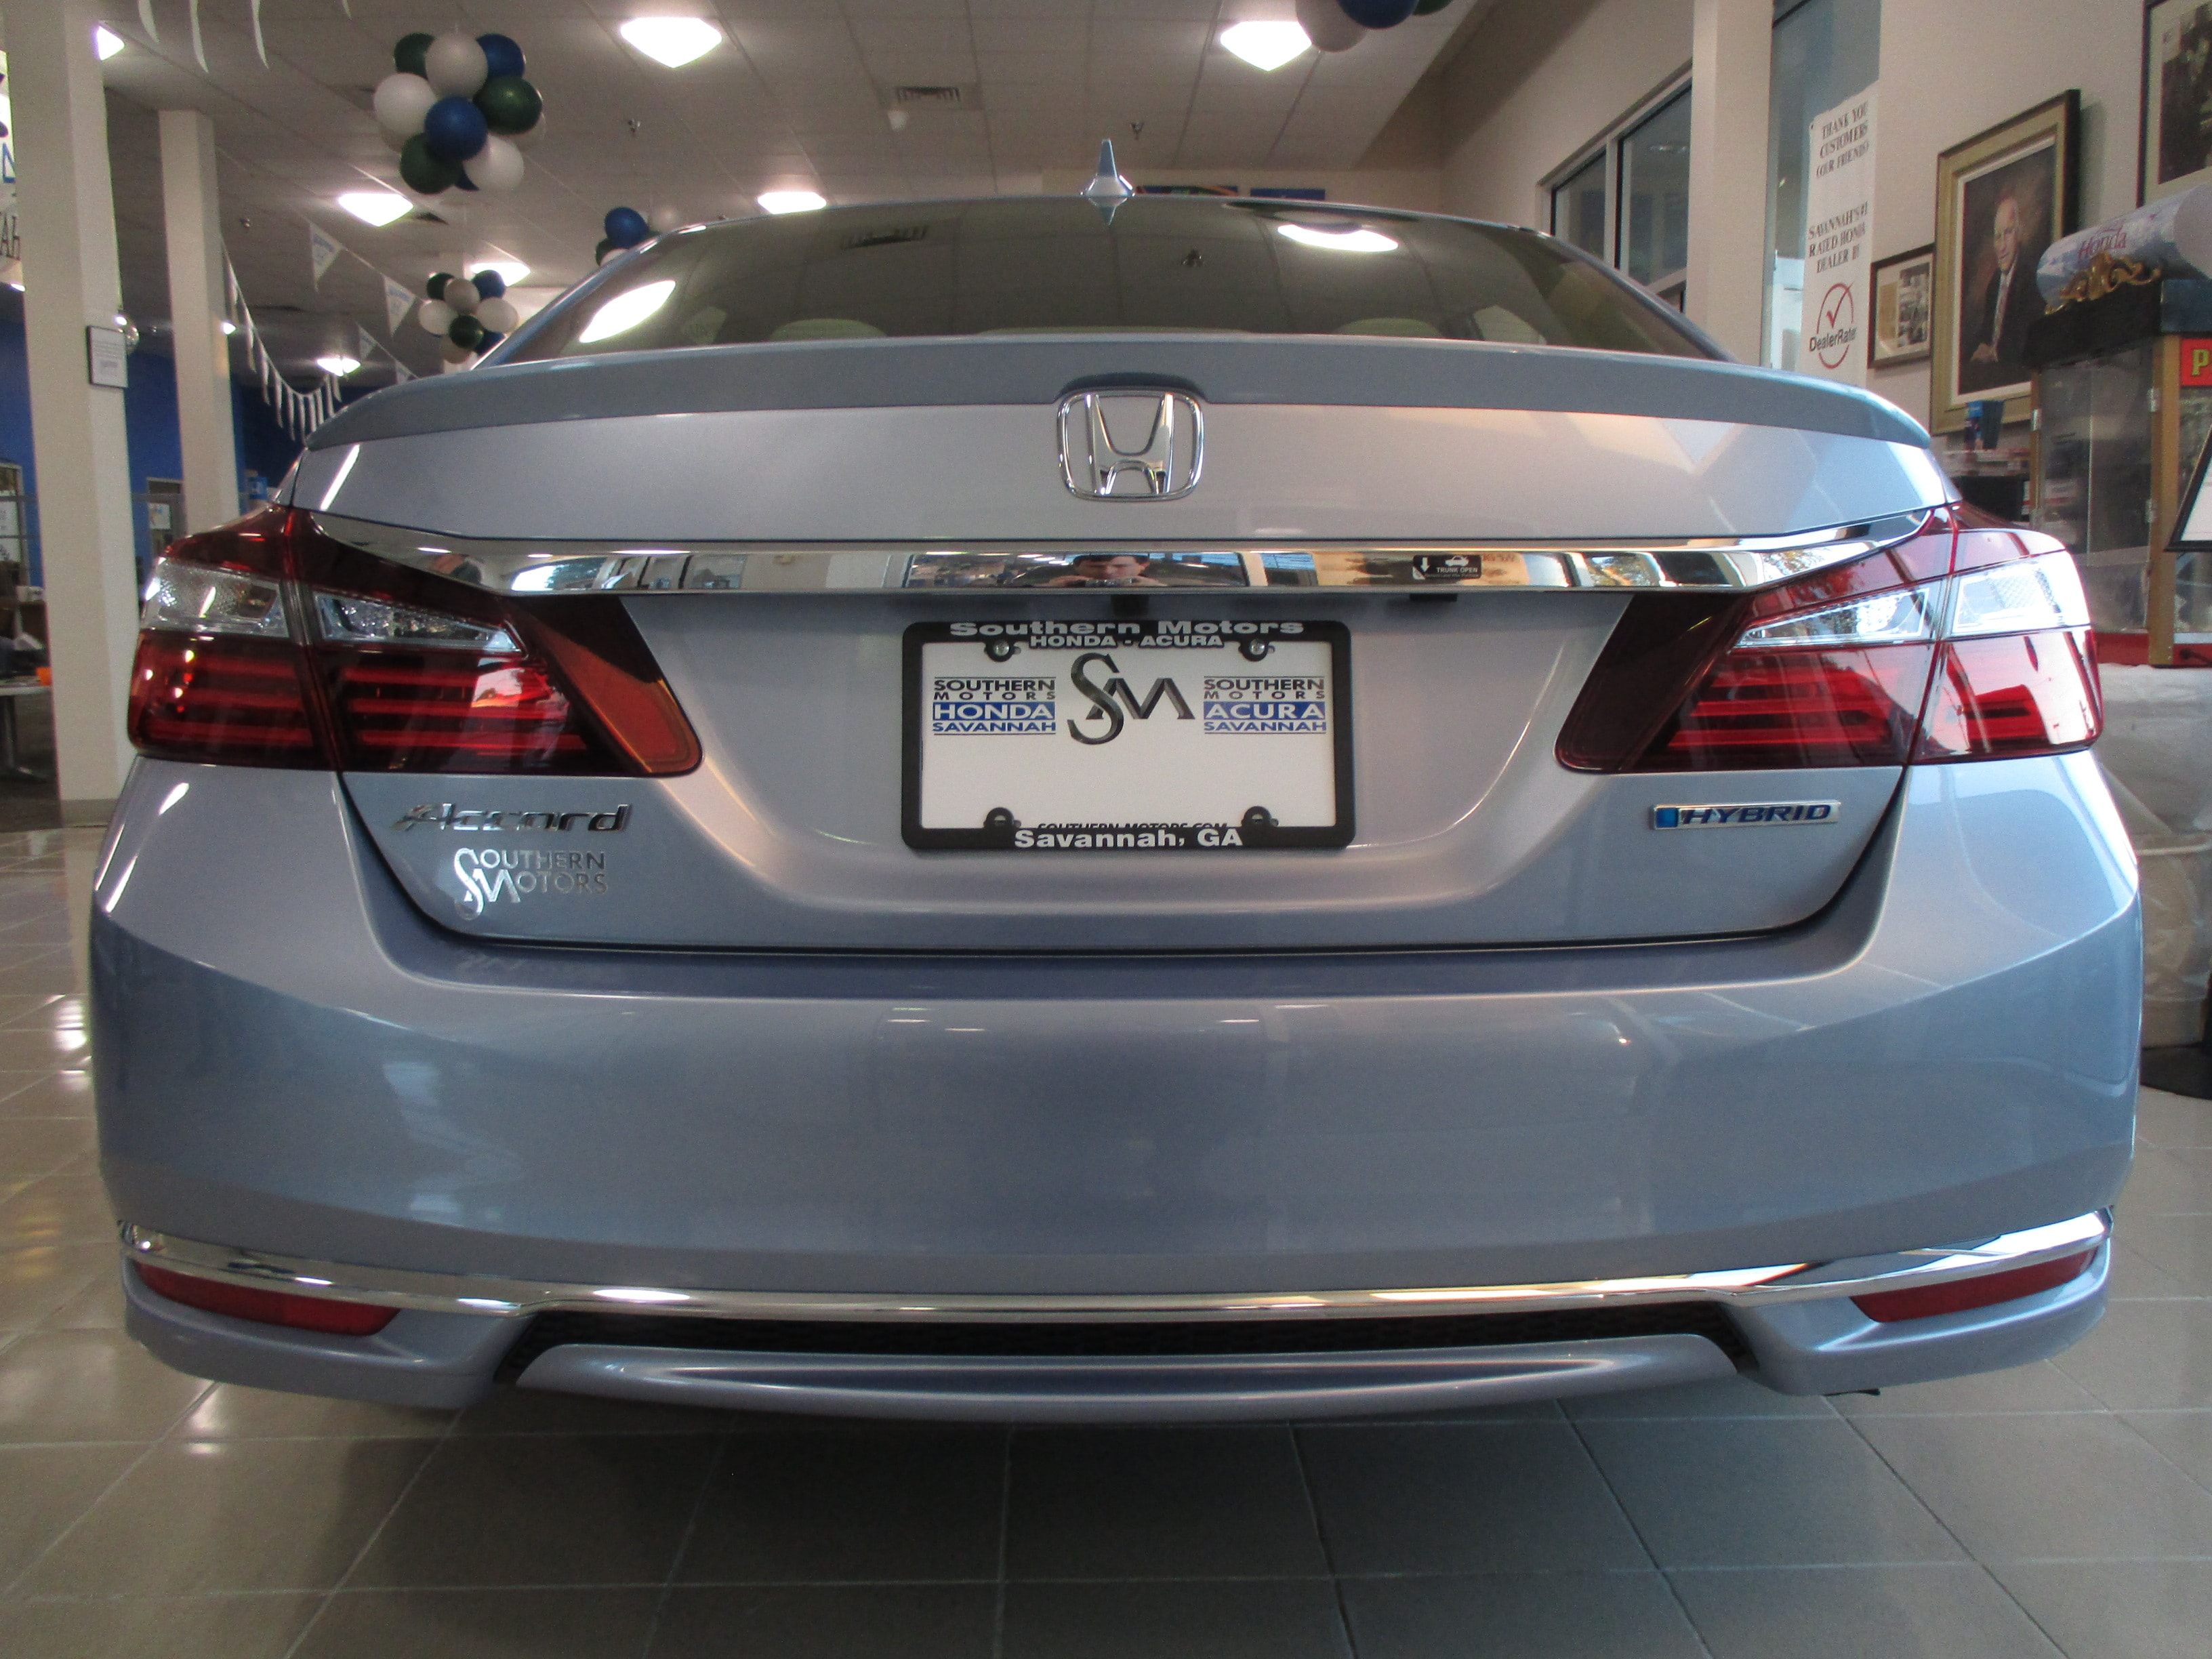 New 2017 Honda Accord Hybrid Savannah Jhmcr6f32hc011873